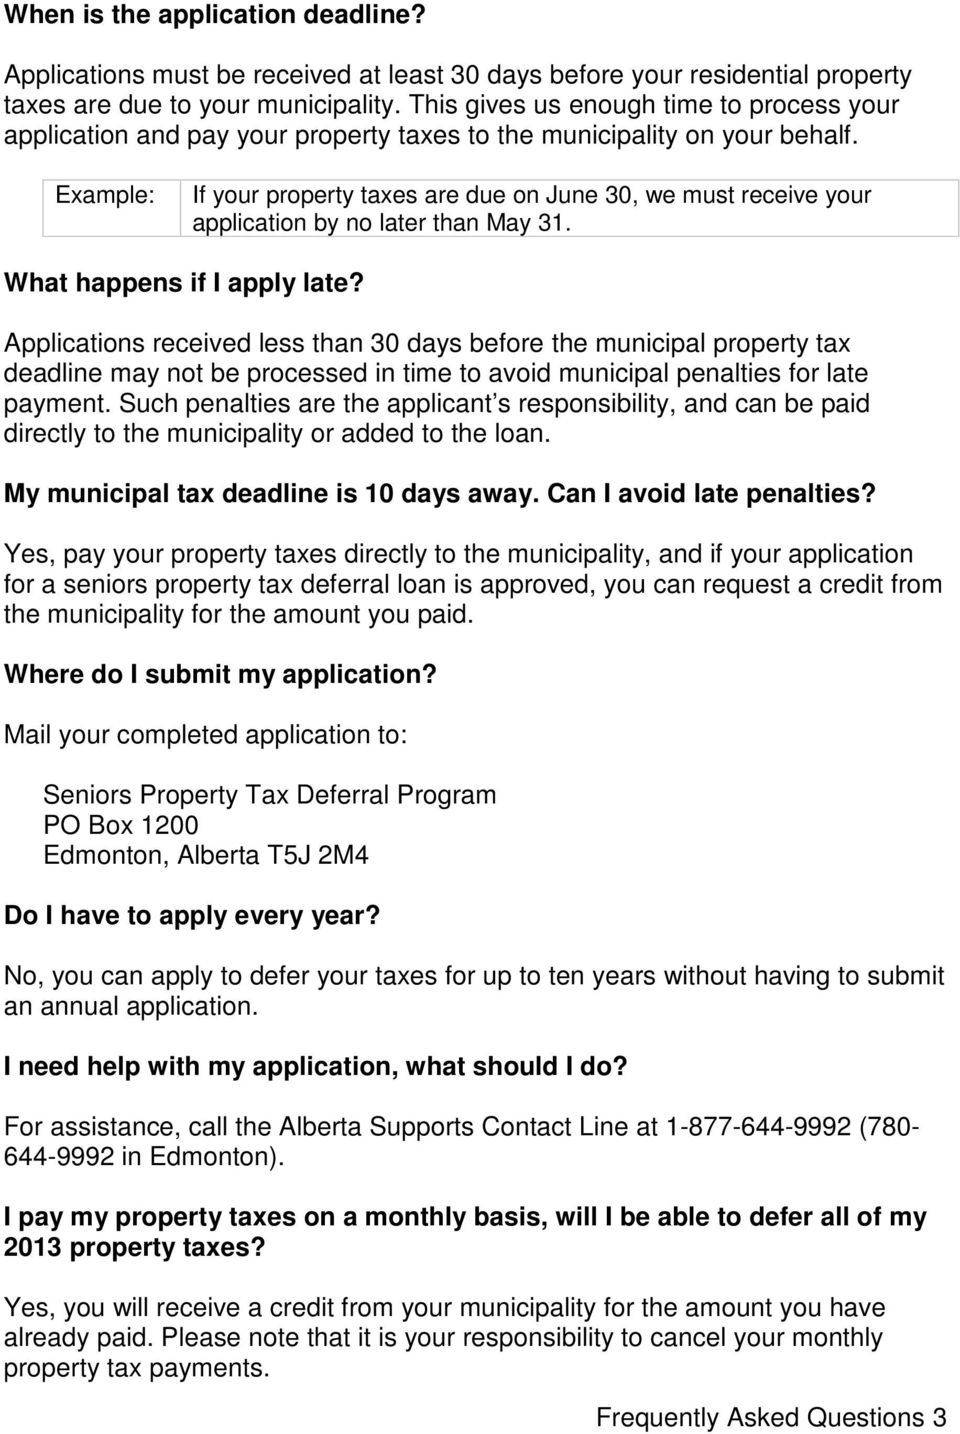 Example: If your property taxes are due on June 30, we must receive your application by no later than May 31. What happens if I apply late?